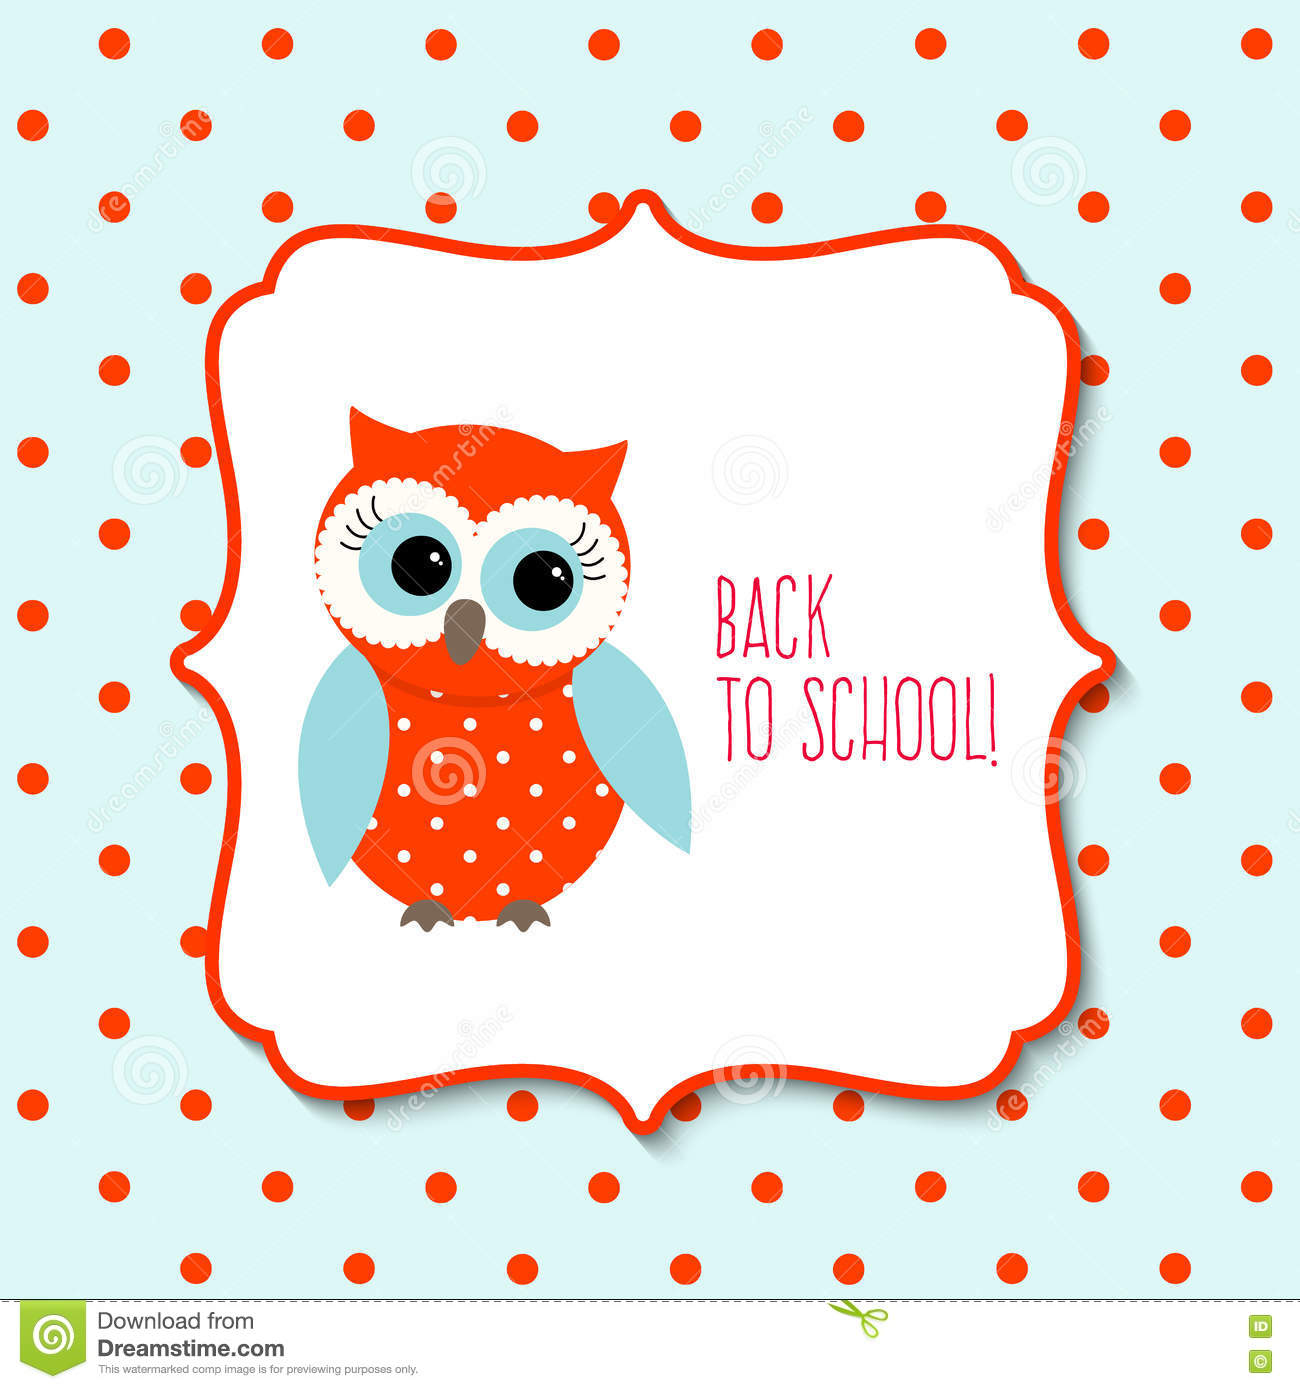 cute owl with text back to school, illustration stock vector